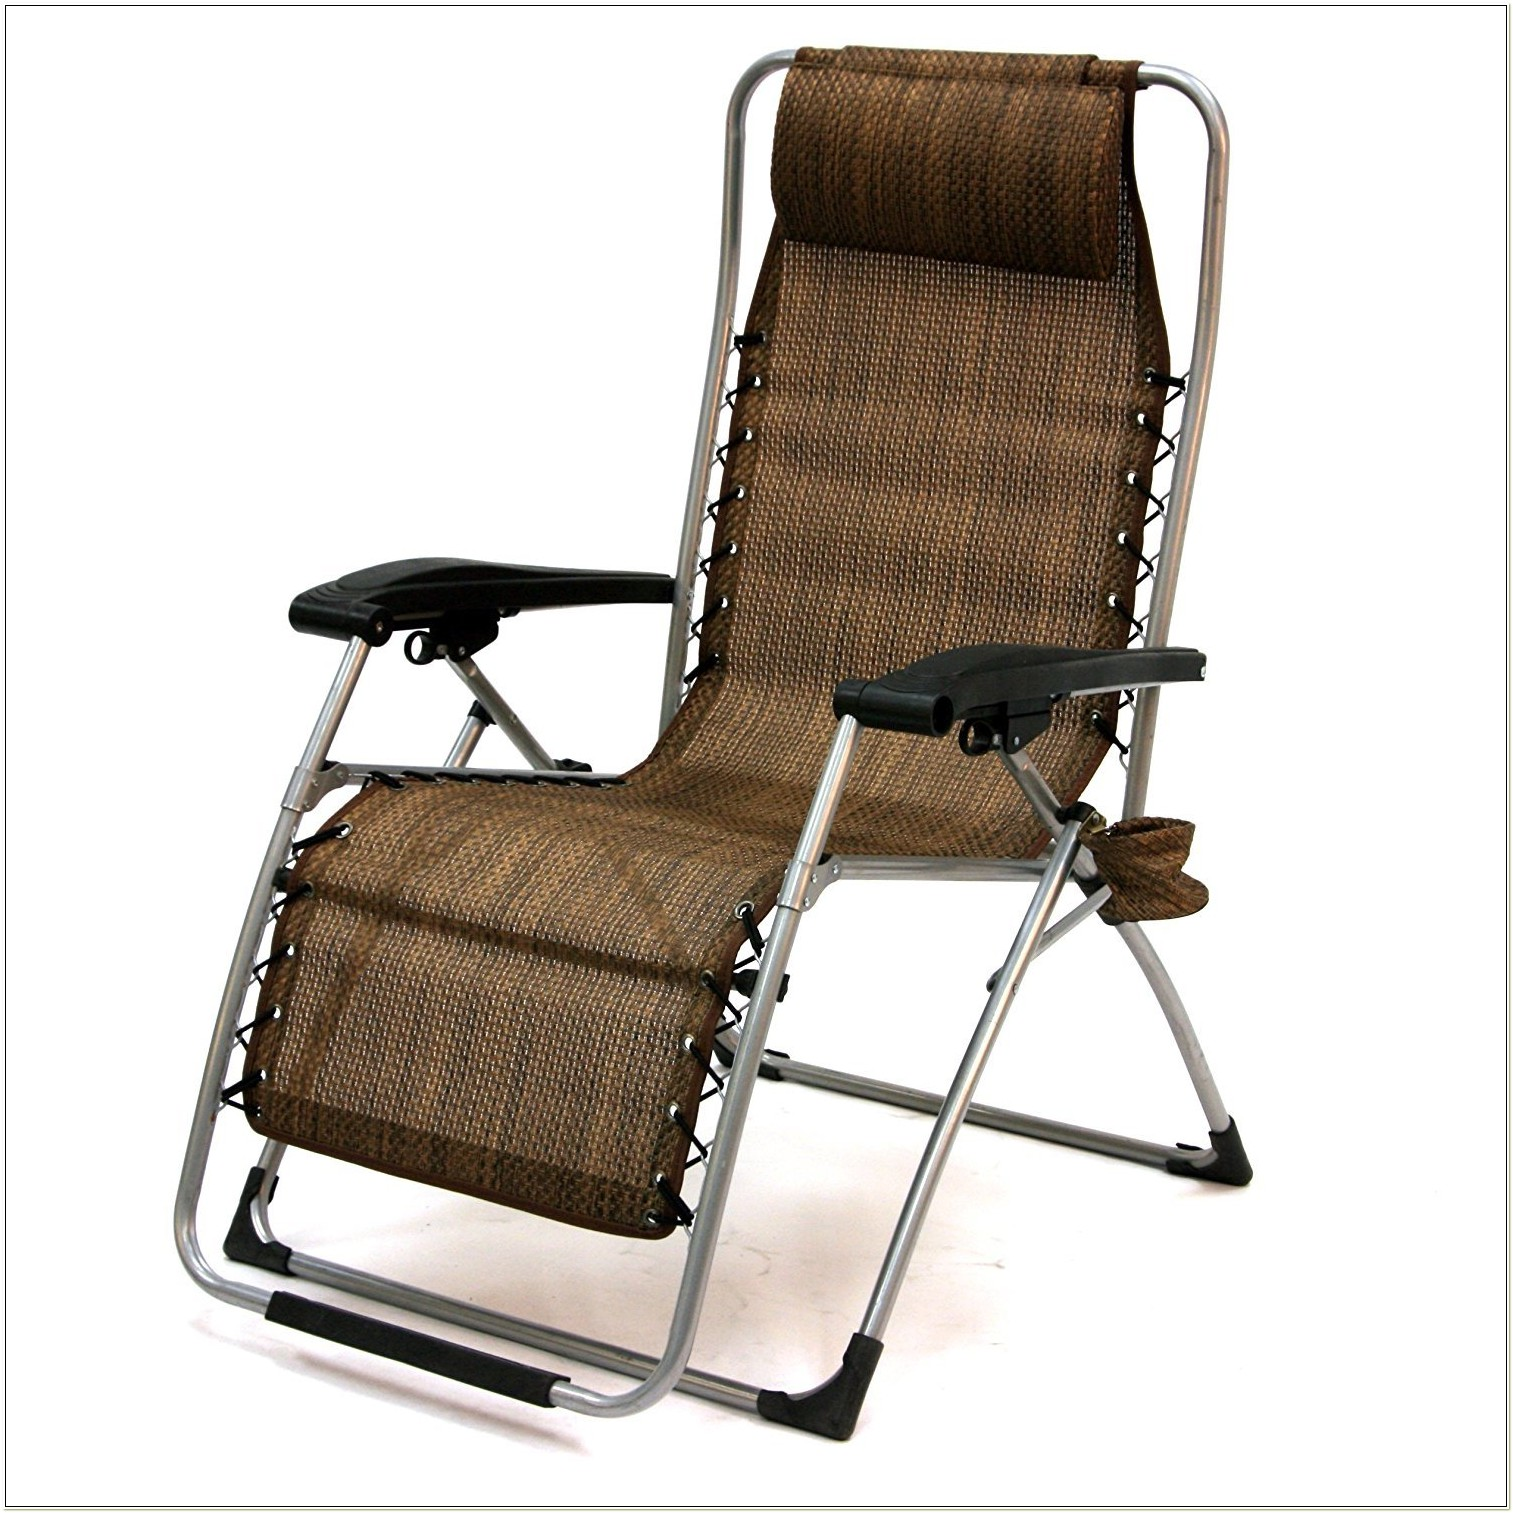 Anti Gravity Lounge Chairs Amazon